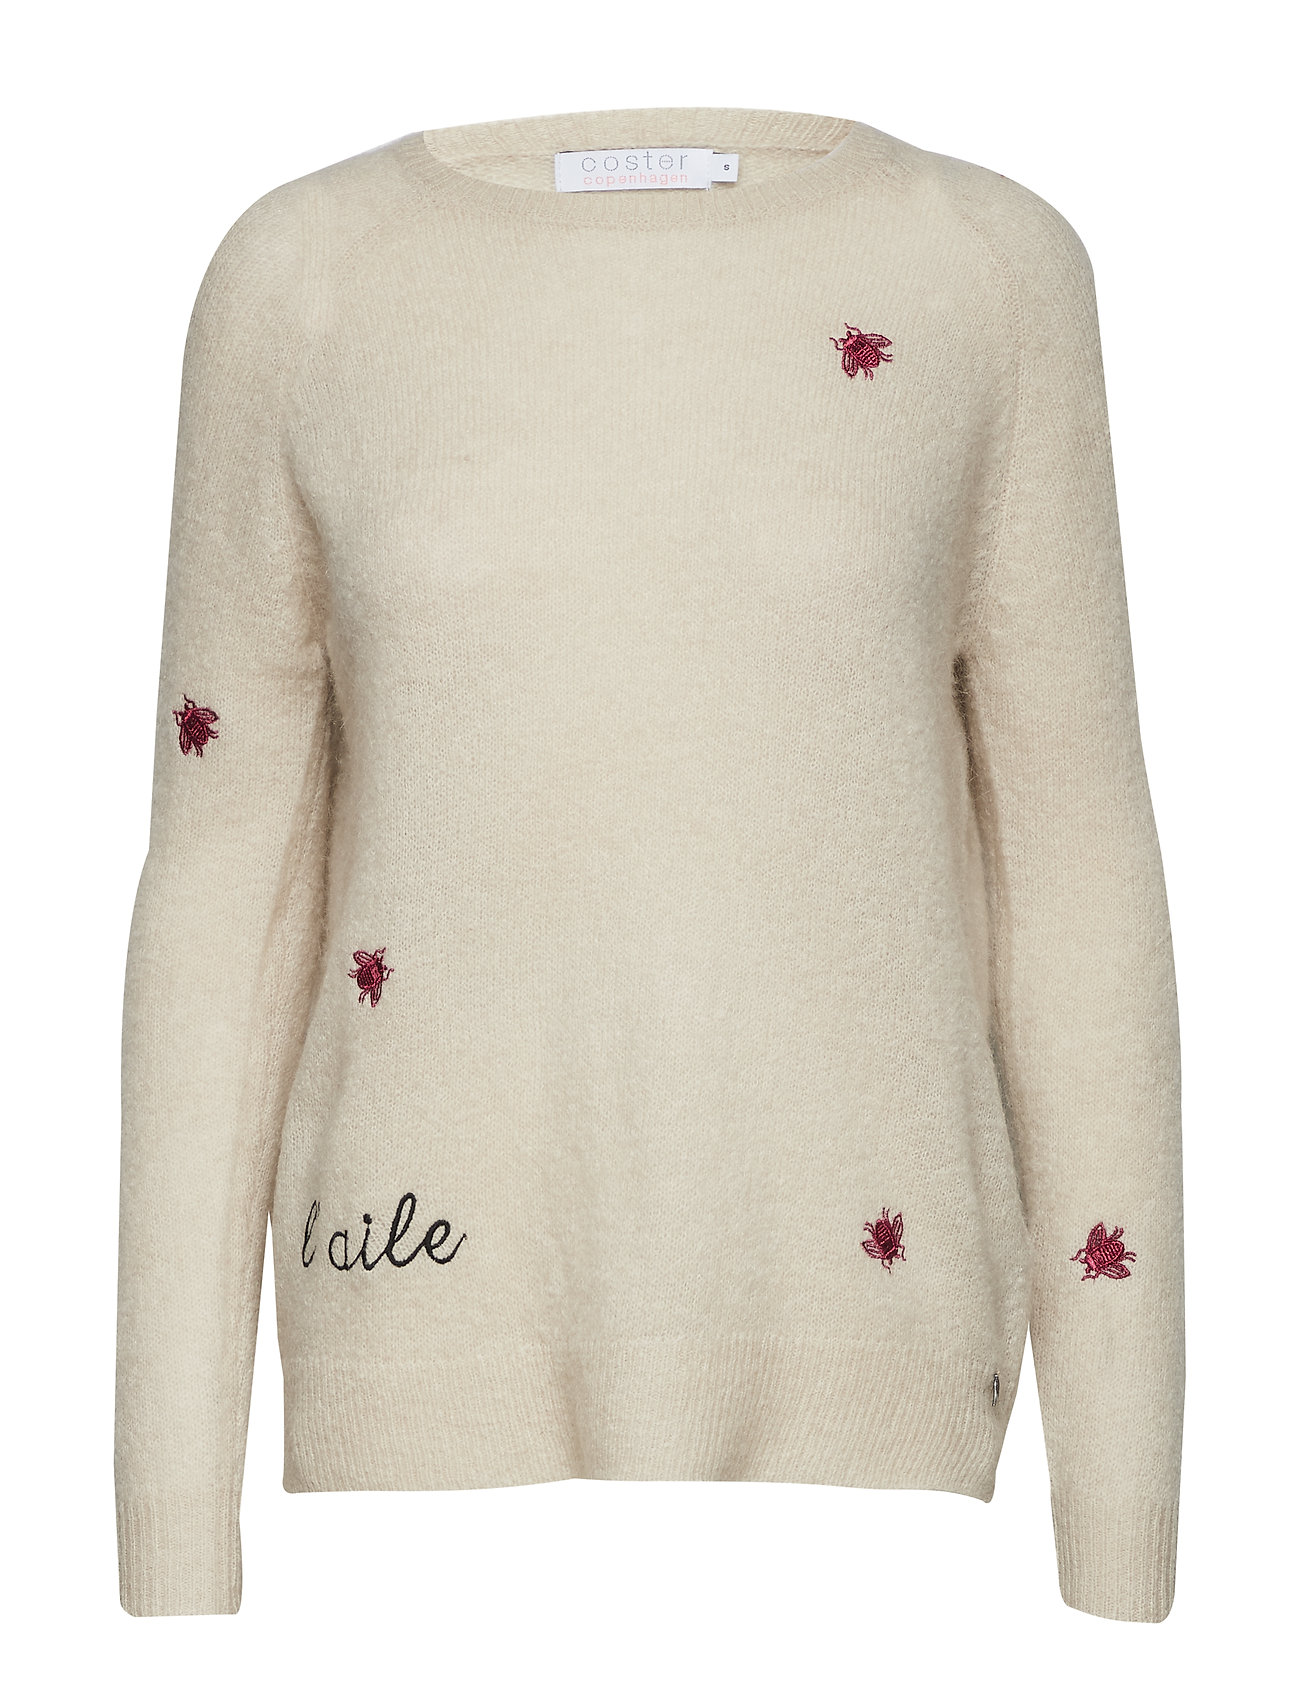 Sweater In Mohair Knit W. Embroider - Coster Copenhagen